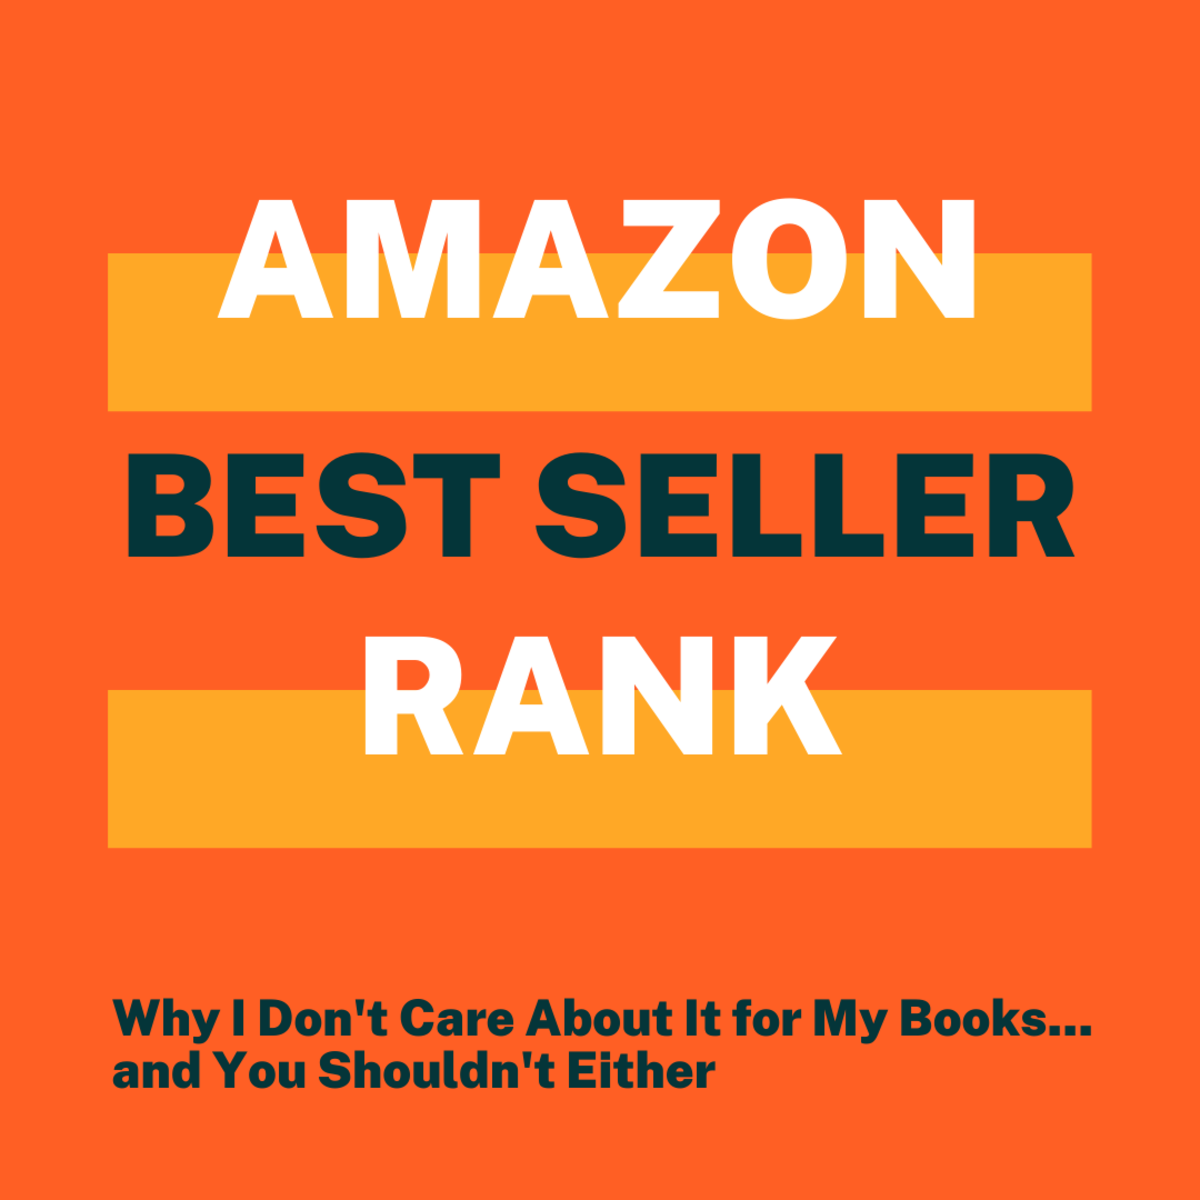 Why I Don't Care About Amazon Best Seller Rank for My Books